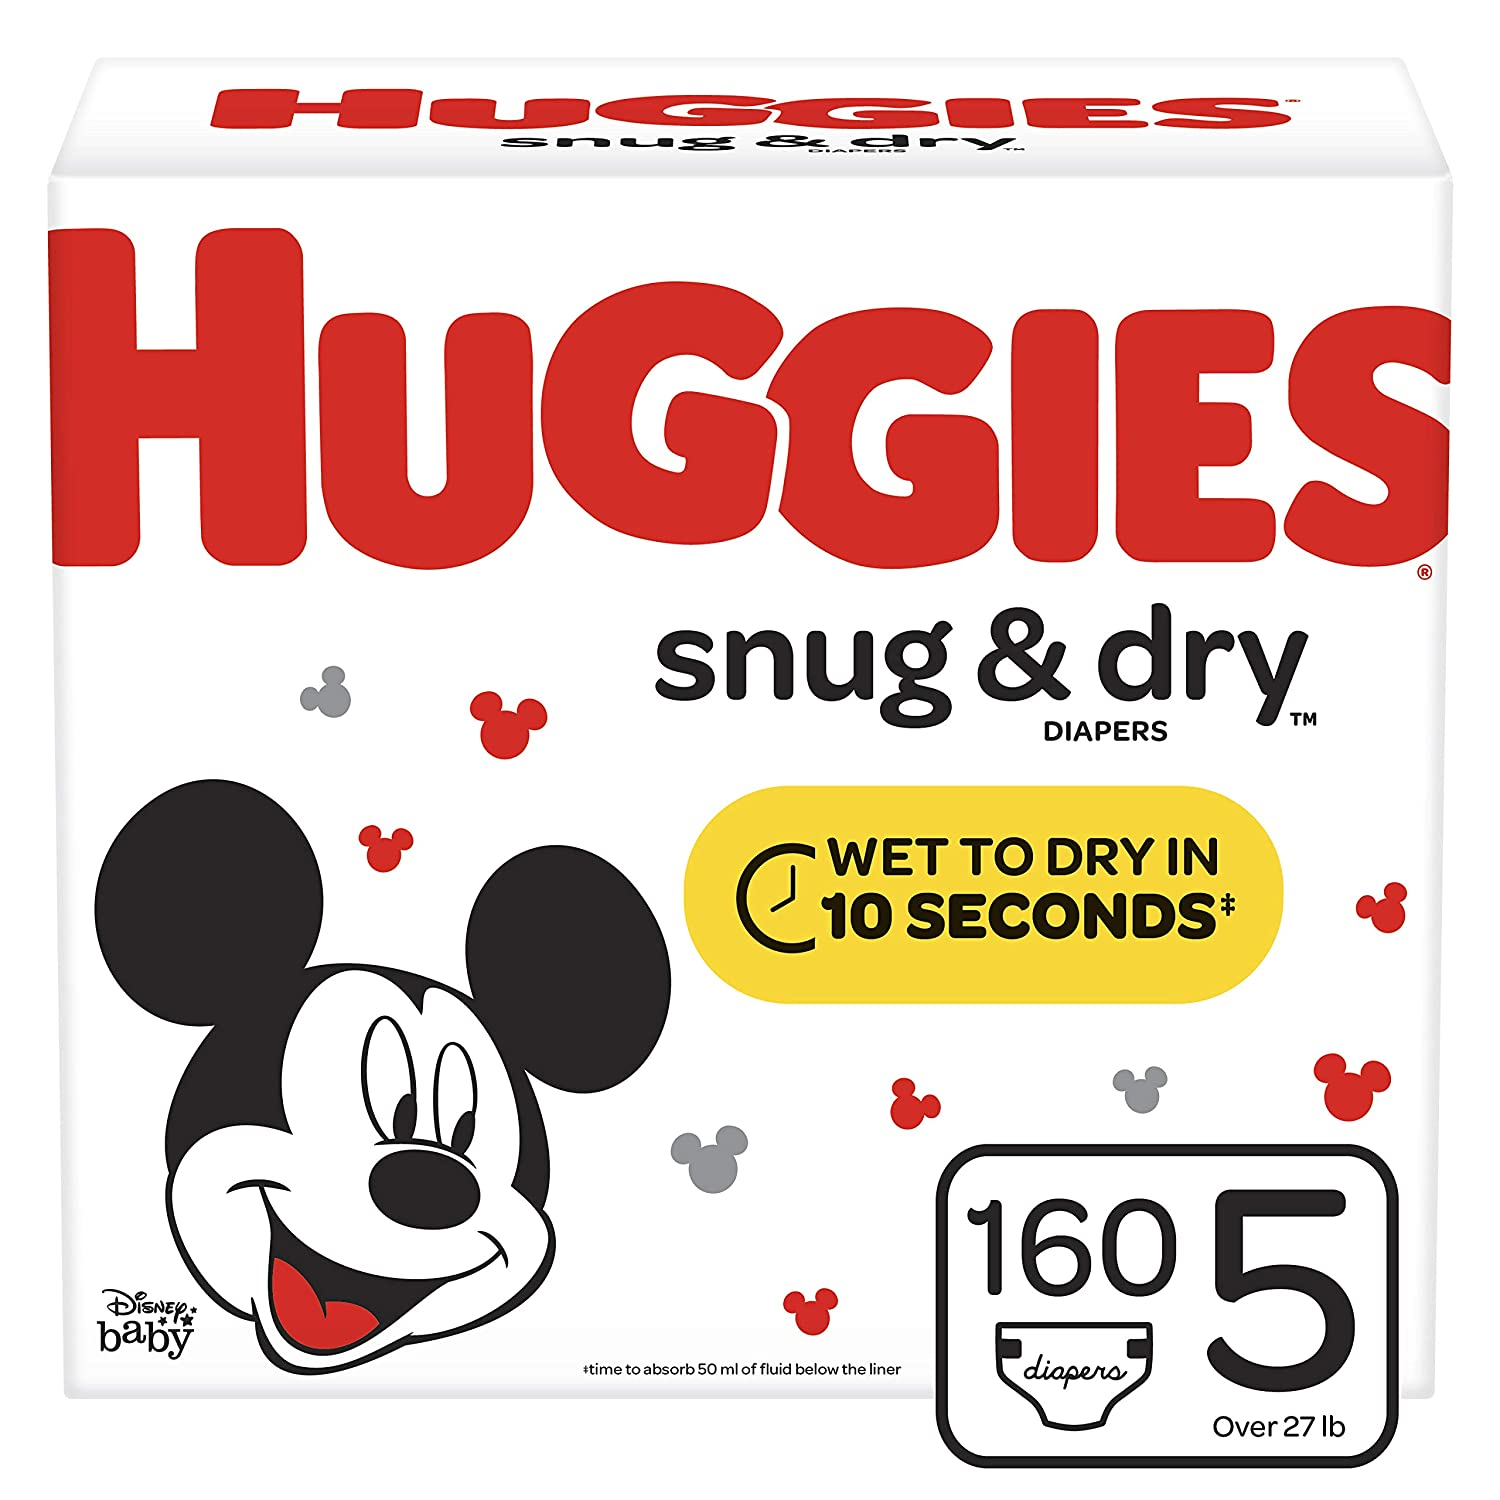 Huggies Snug & Dry Diapers, Size 5 (27+ lb.), 160 Count, One Month Supply (Packaging May Vary)